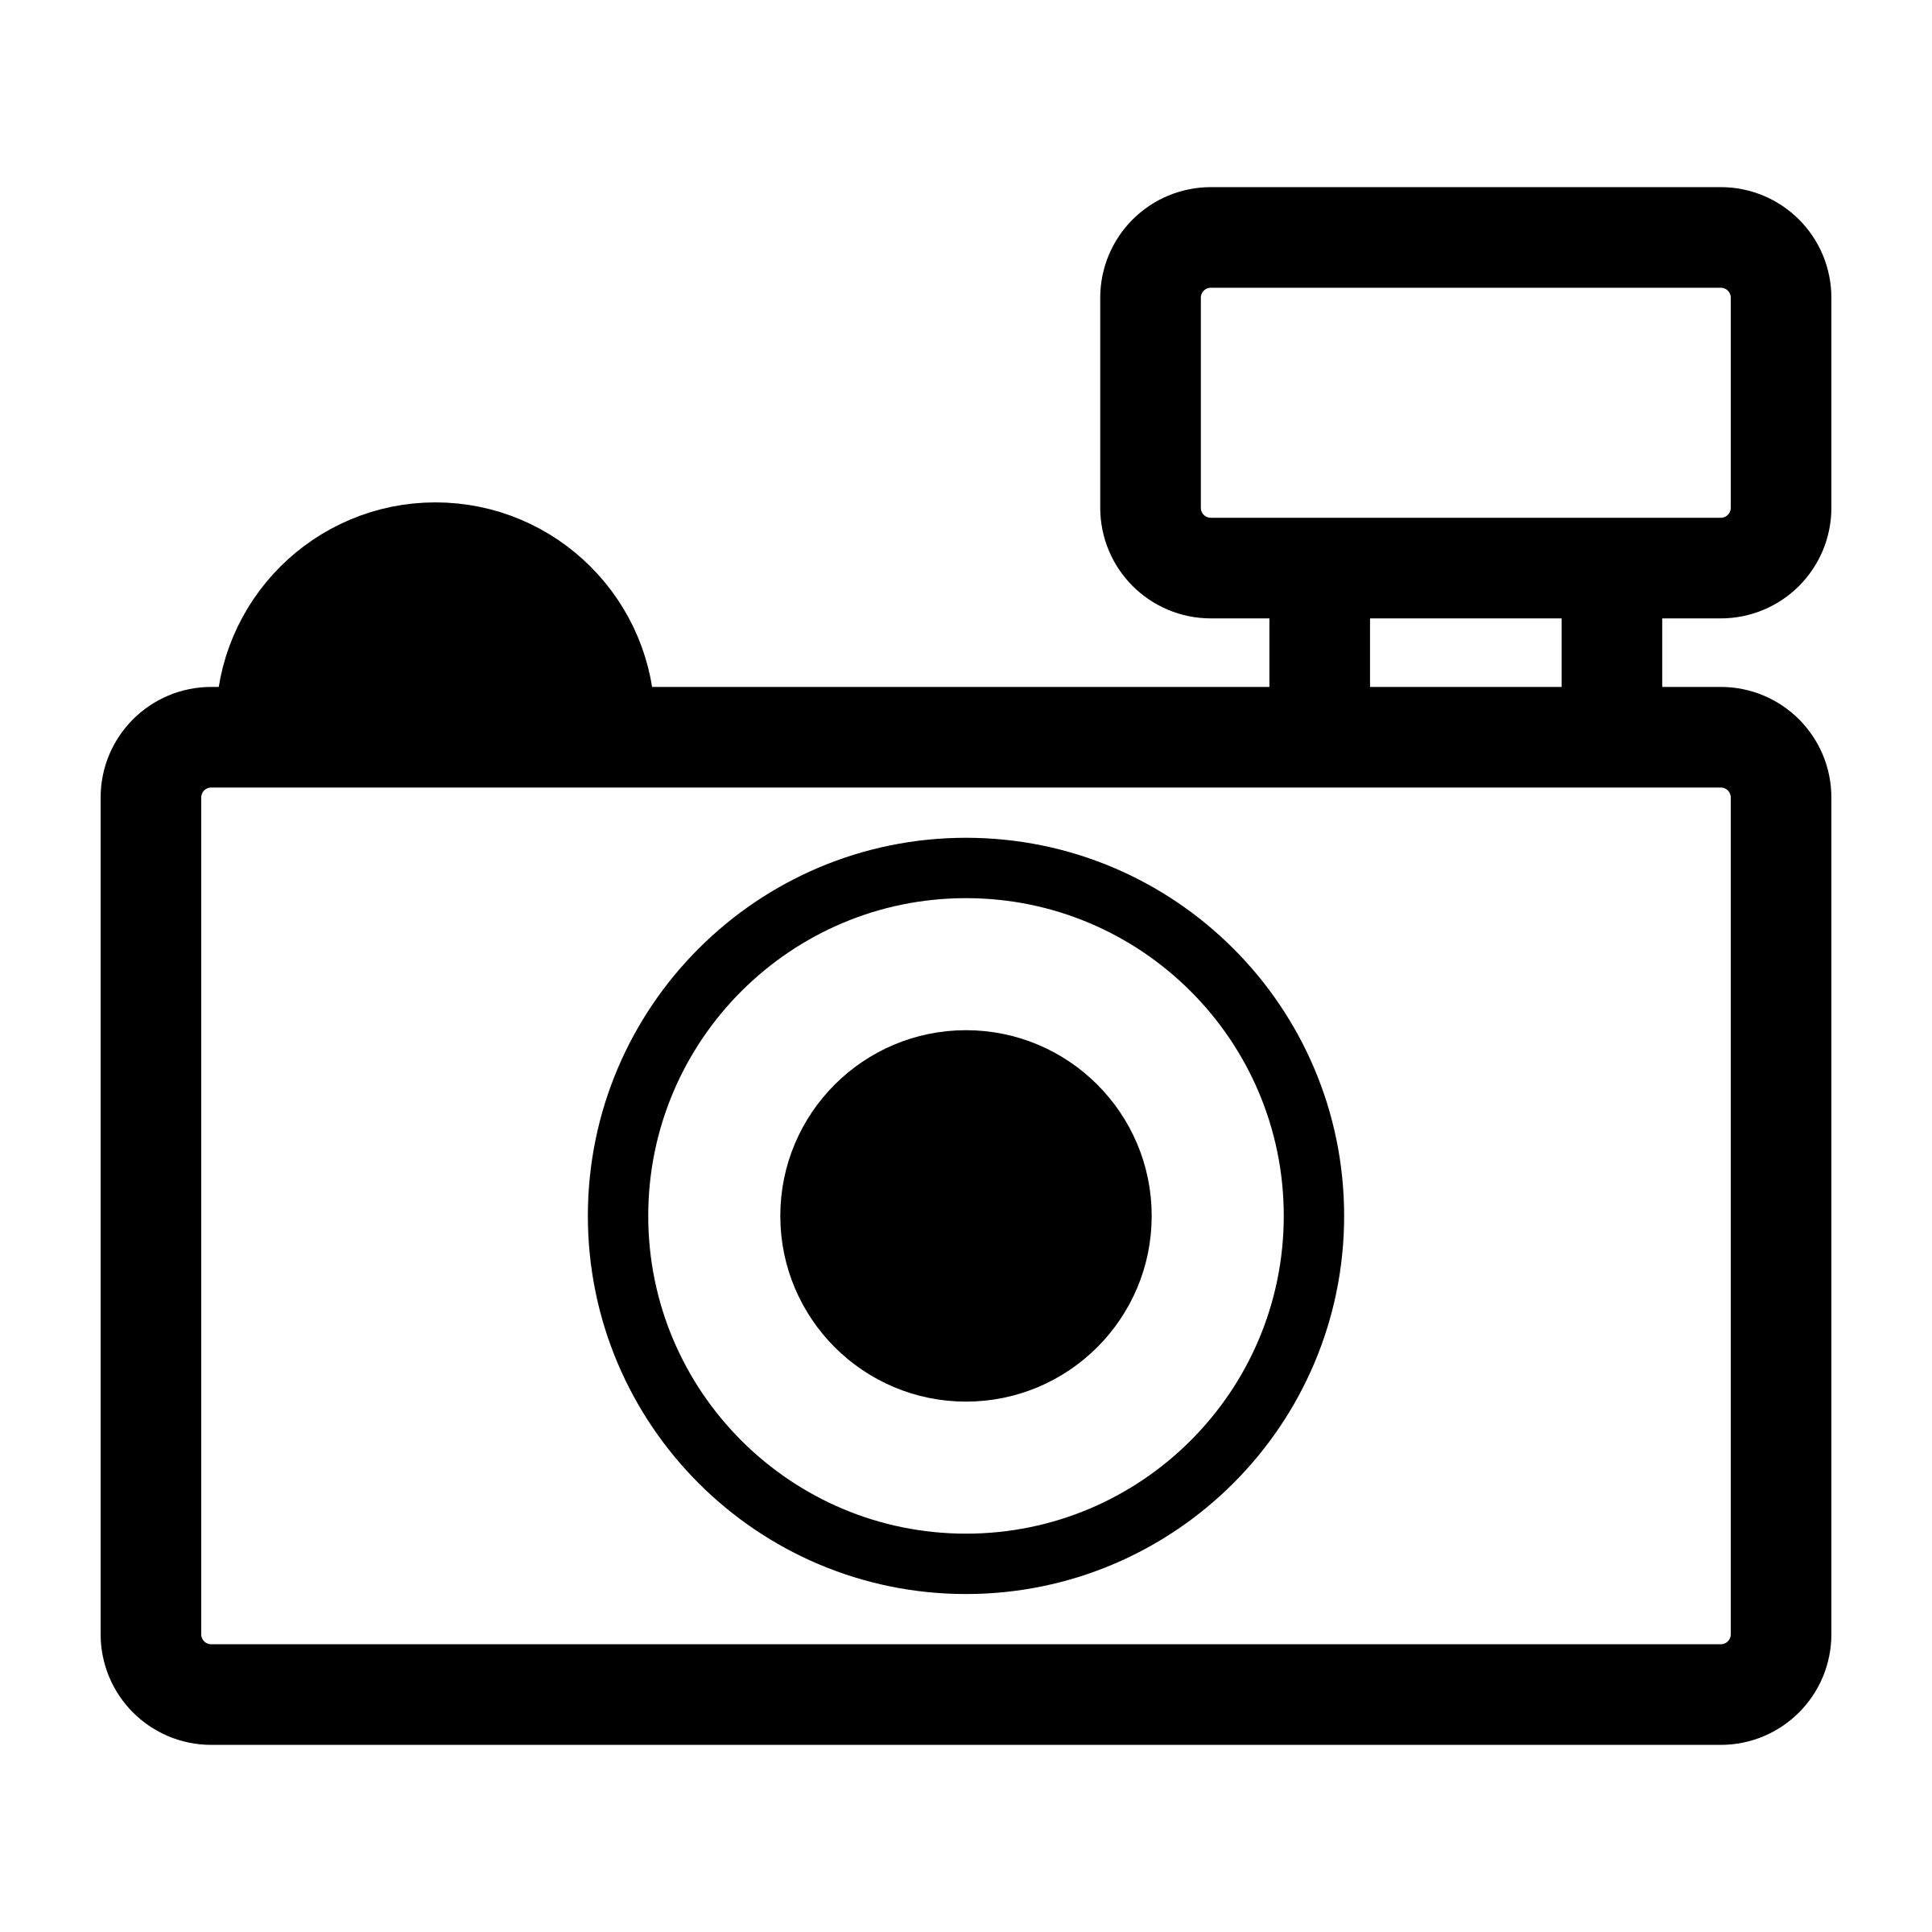 Phot clipart clip art royalty free download Best Camera Clipart #25769 - Clipartion.com clip art royalty free download